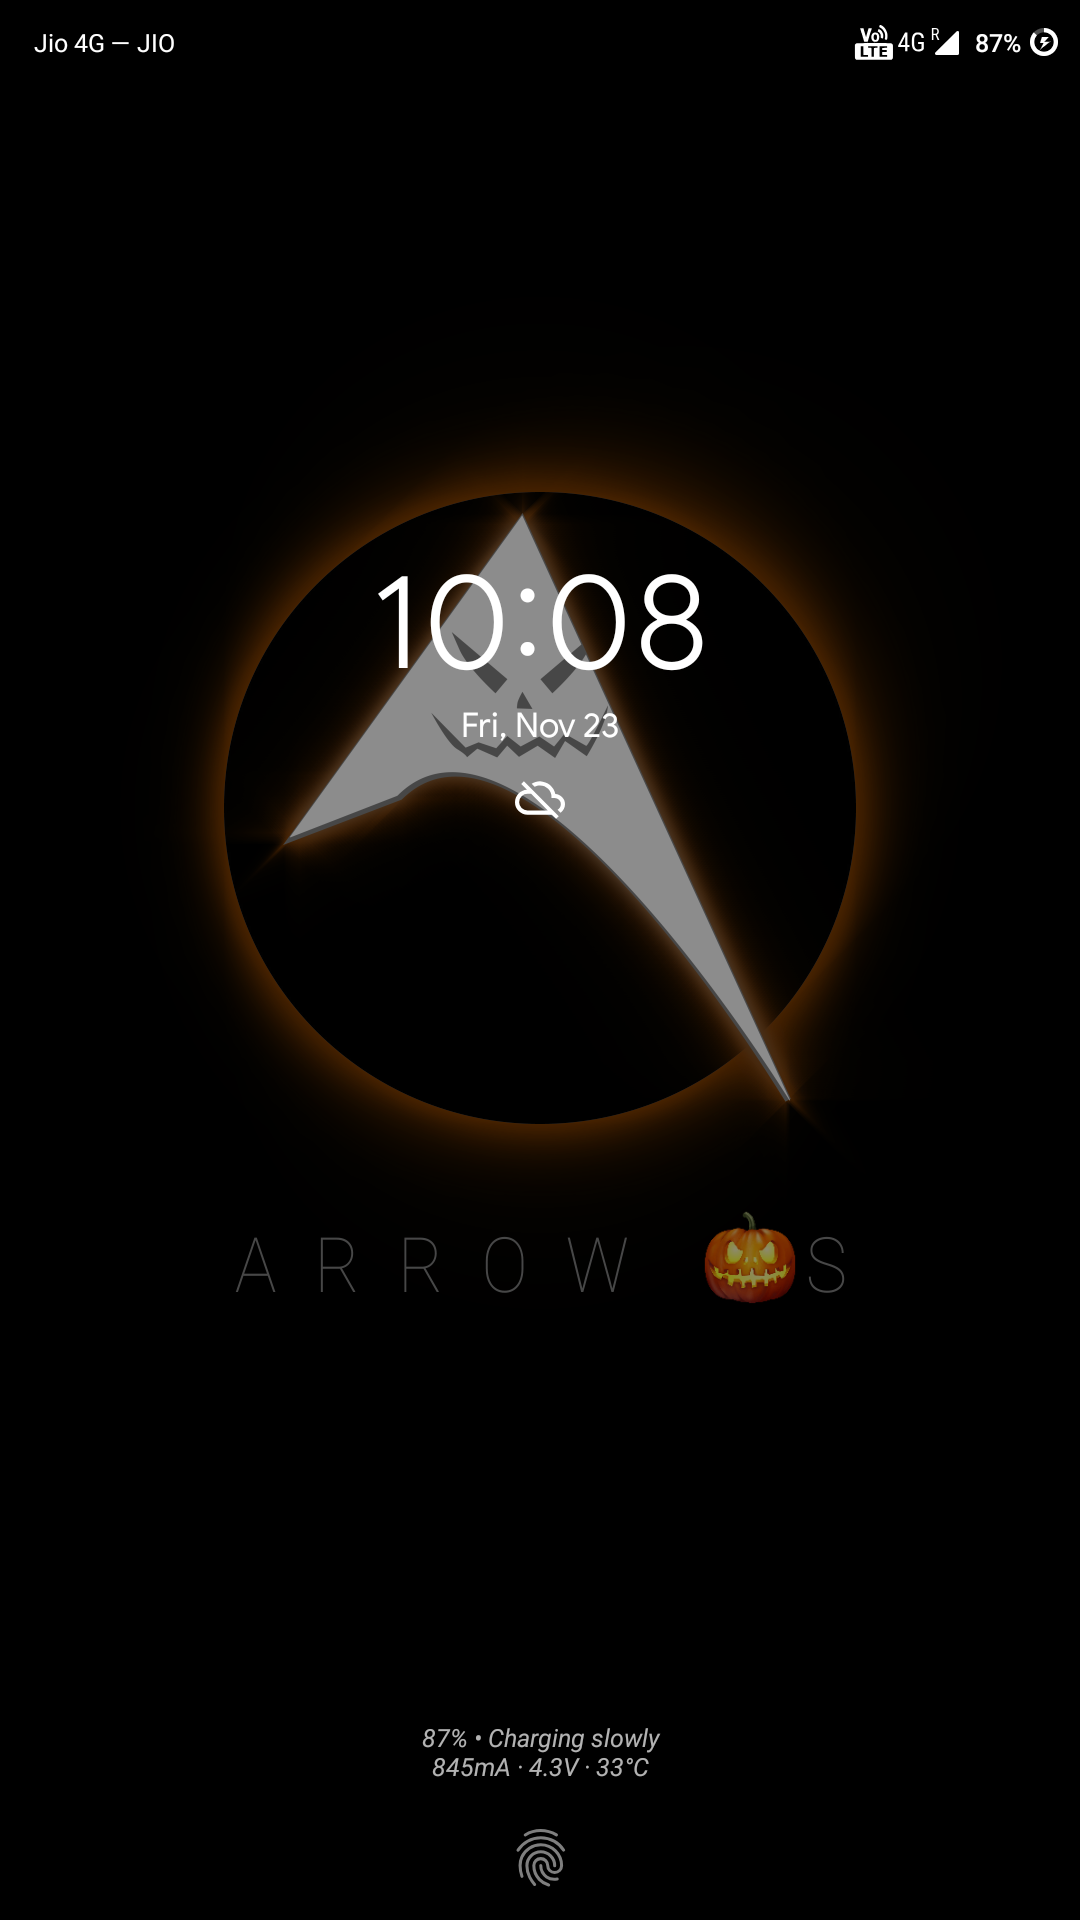 Get Android 9 0 Pie on Xiaomi Redmi Note 4 with Arrow OS